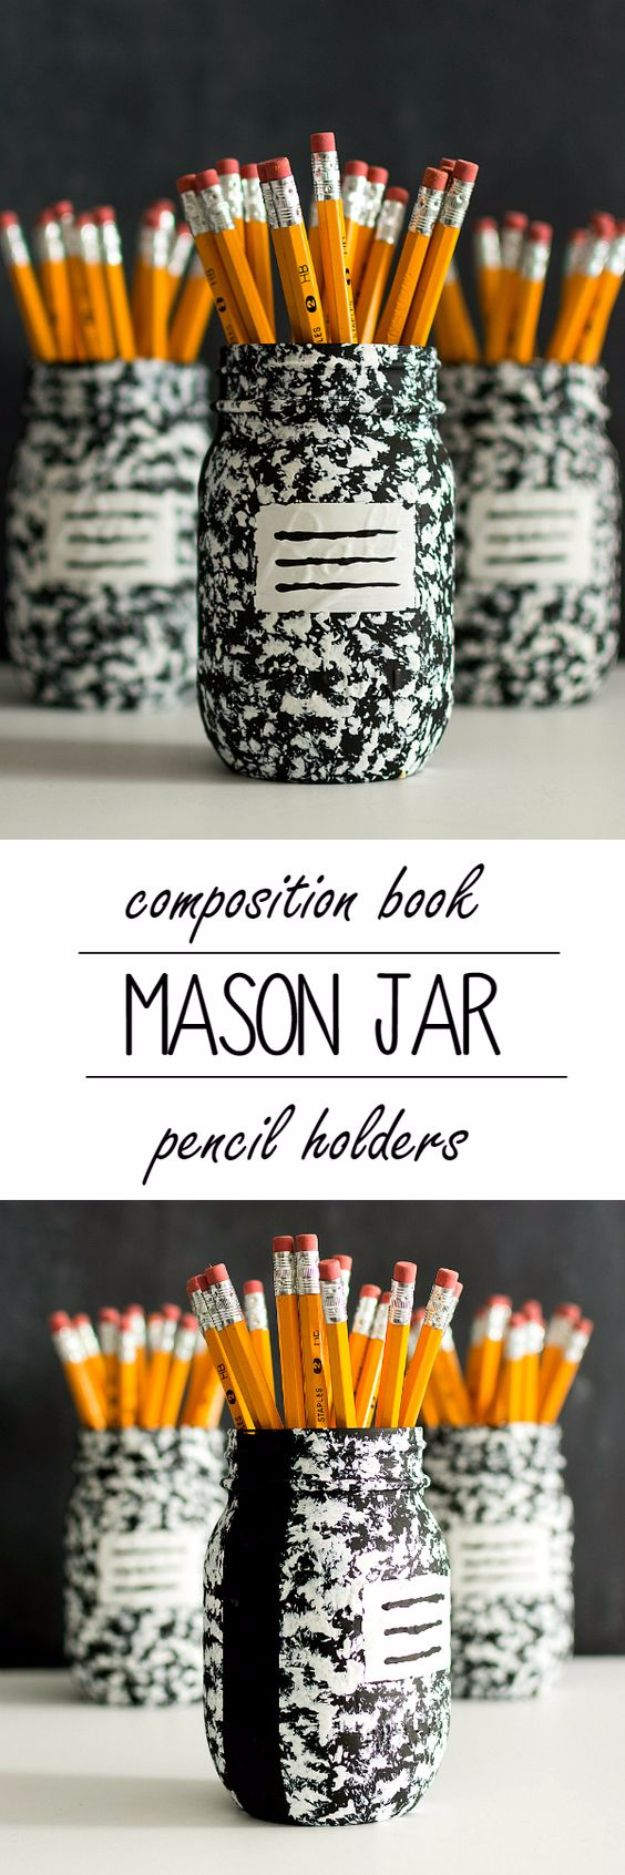 Cute DIY Mason Jar Ideas - Composition Book Mason Jar - Fun Crafts, Creative Room Decor, Homemade Gifts, Creative Home Decor Projects and DIY Mason Jar Lights - Cool Crafts for Teens and Tween Girls #diyideas #masonjarcrafts #teencrafts